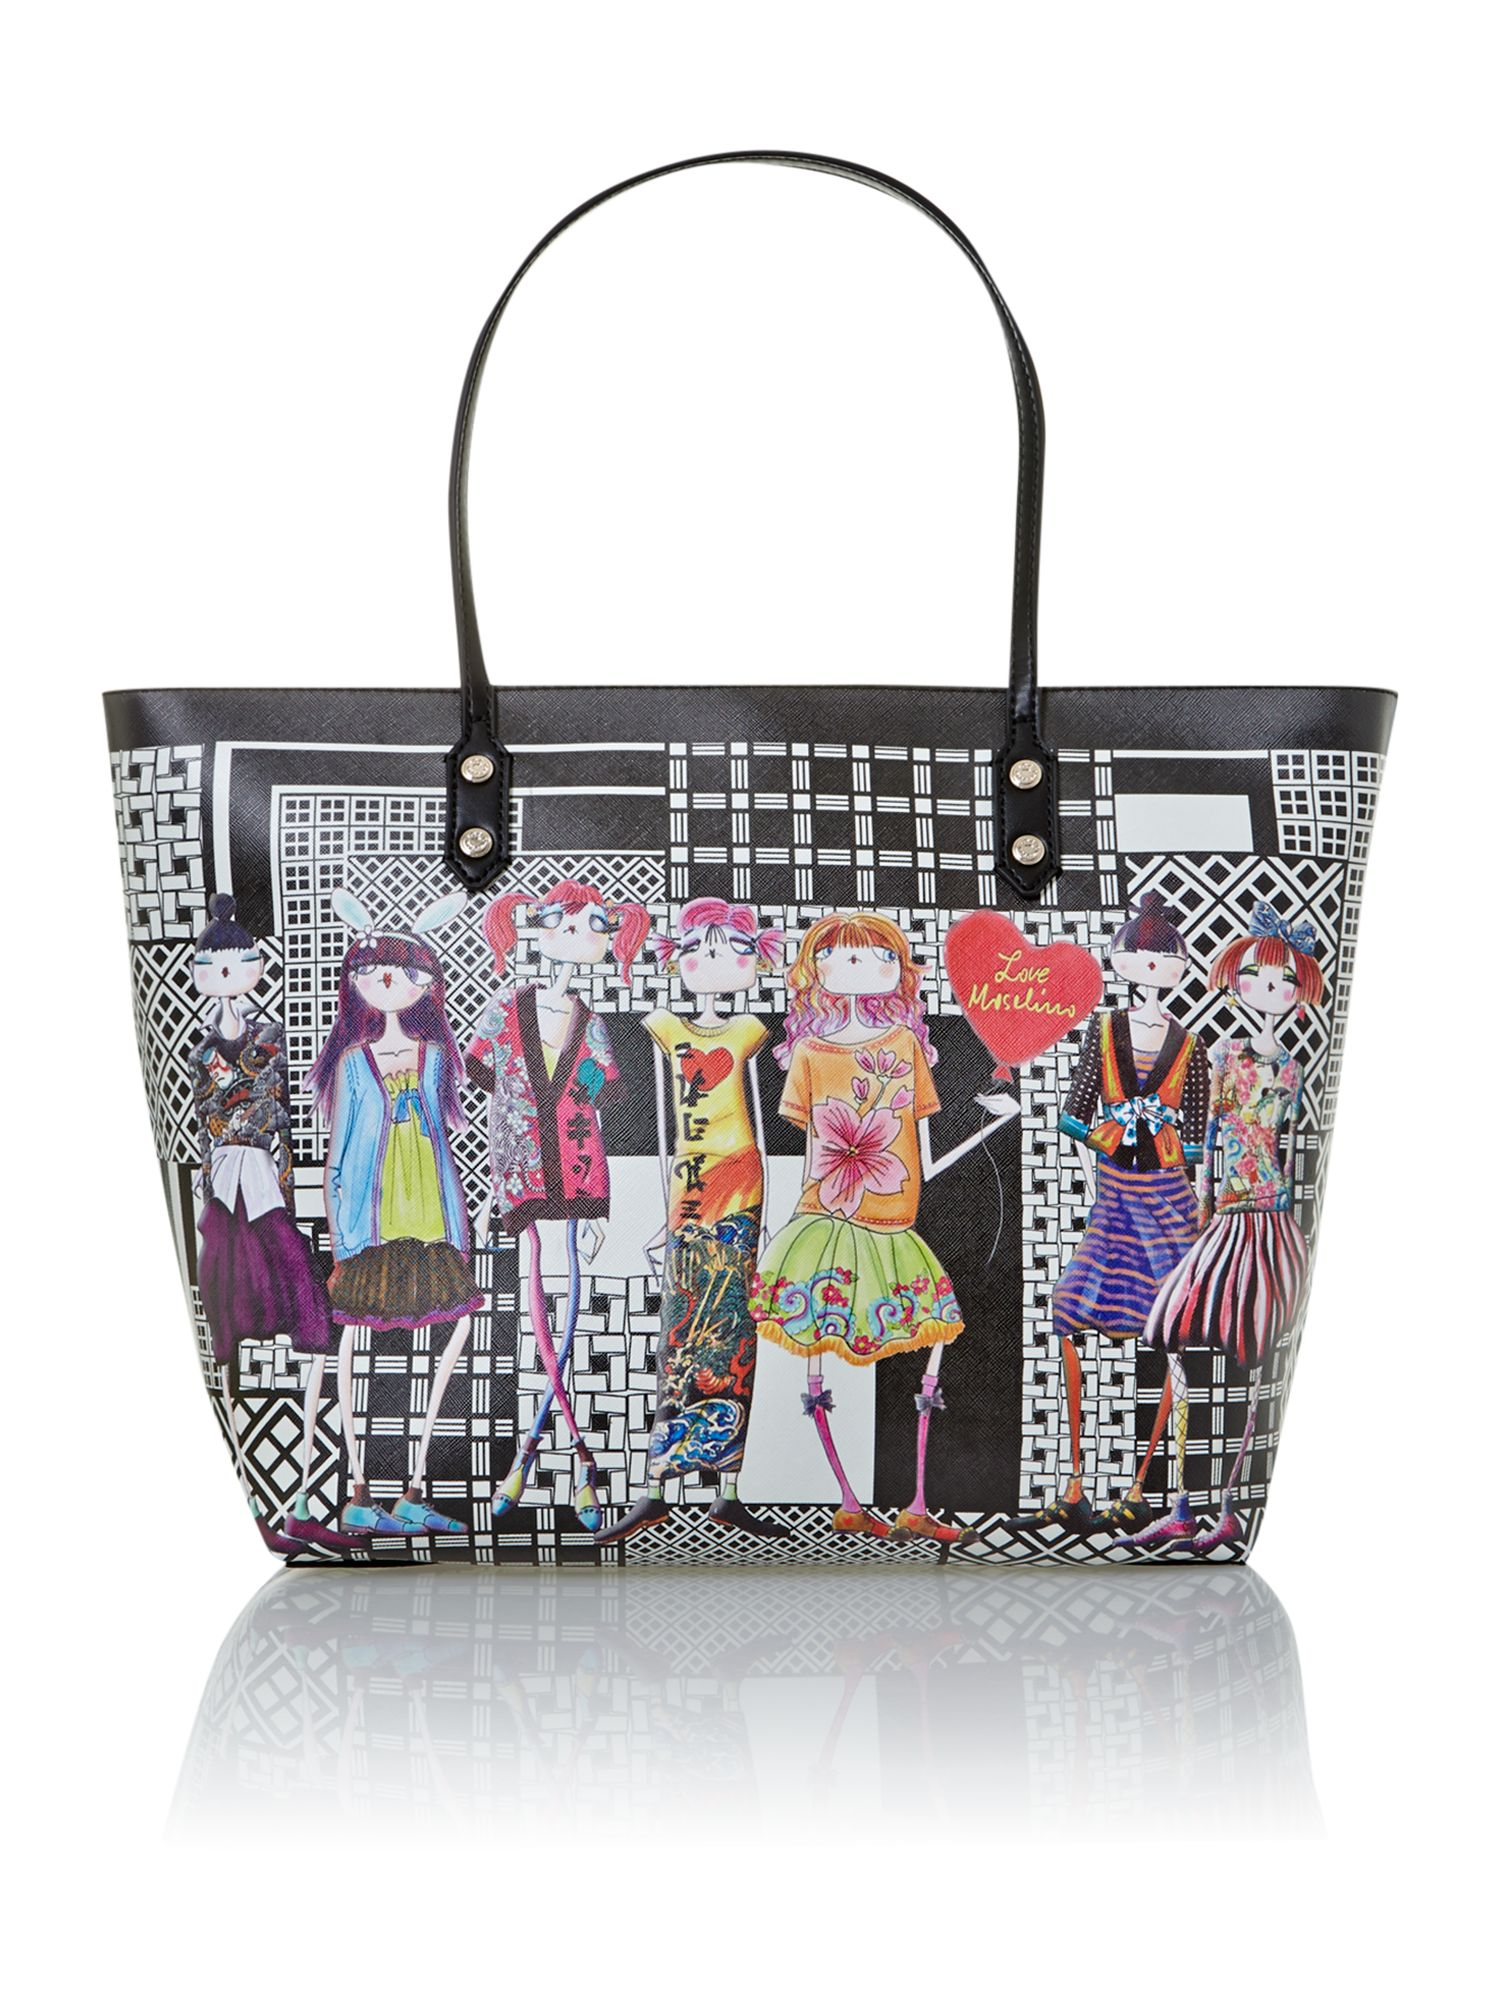 Black large charming tote bag